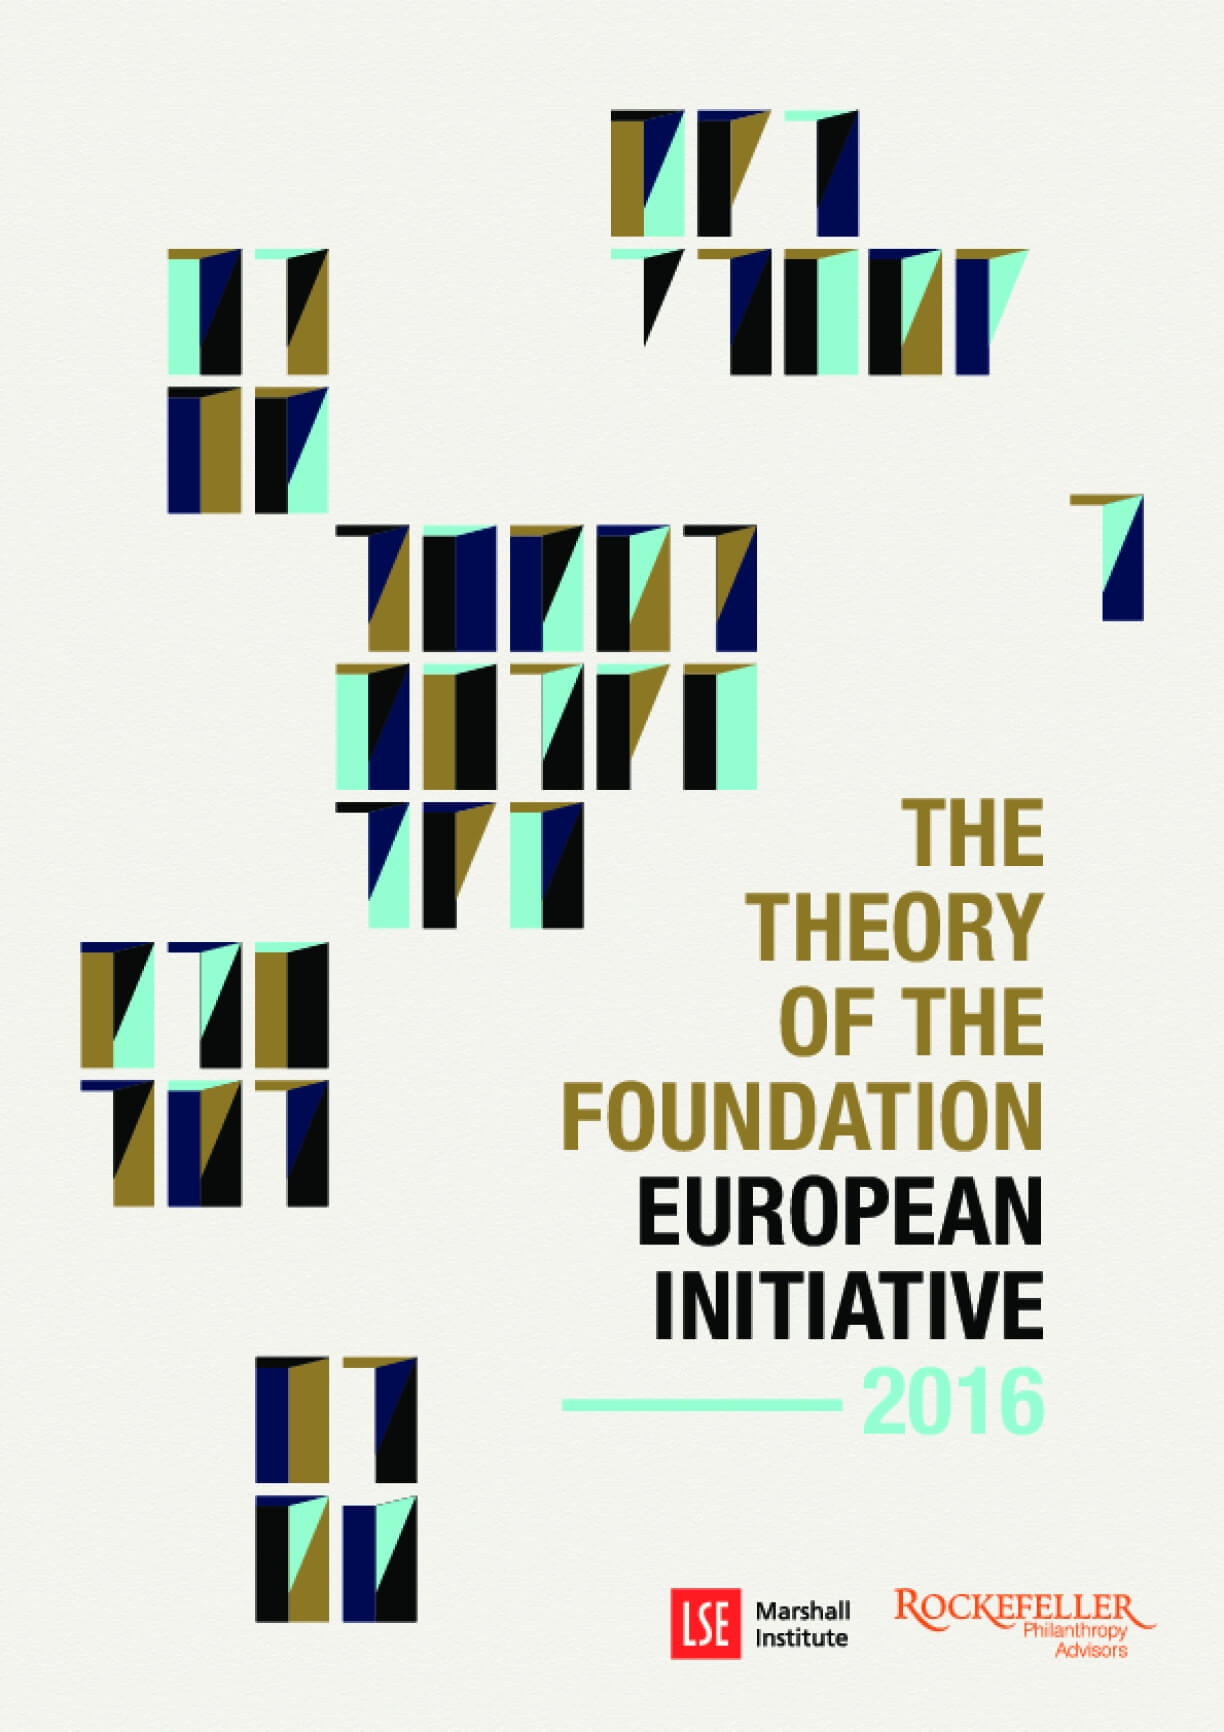 The Theory of the Foundation European Initiative